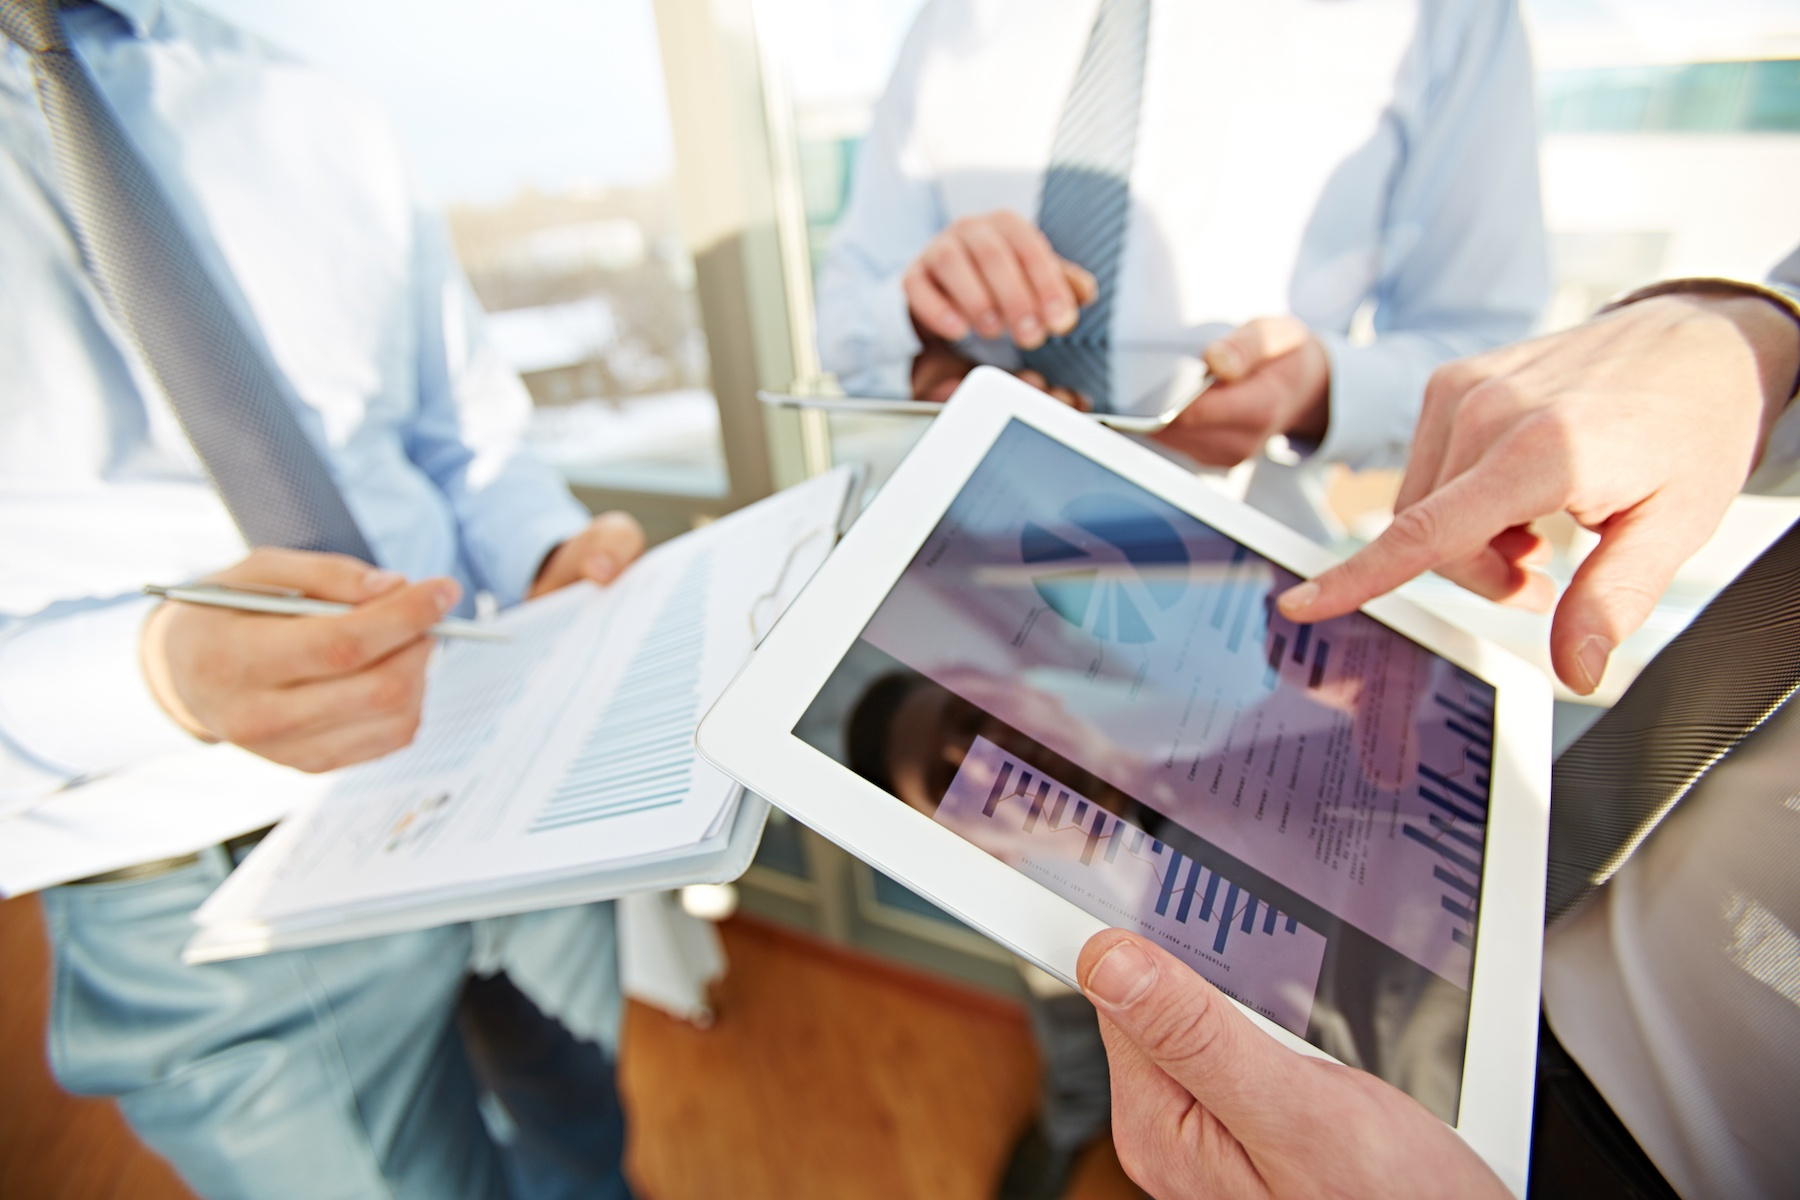 Data collection methods, management and utilization on mobile devices